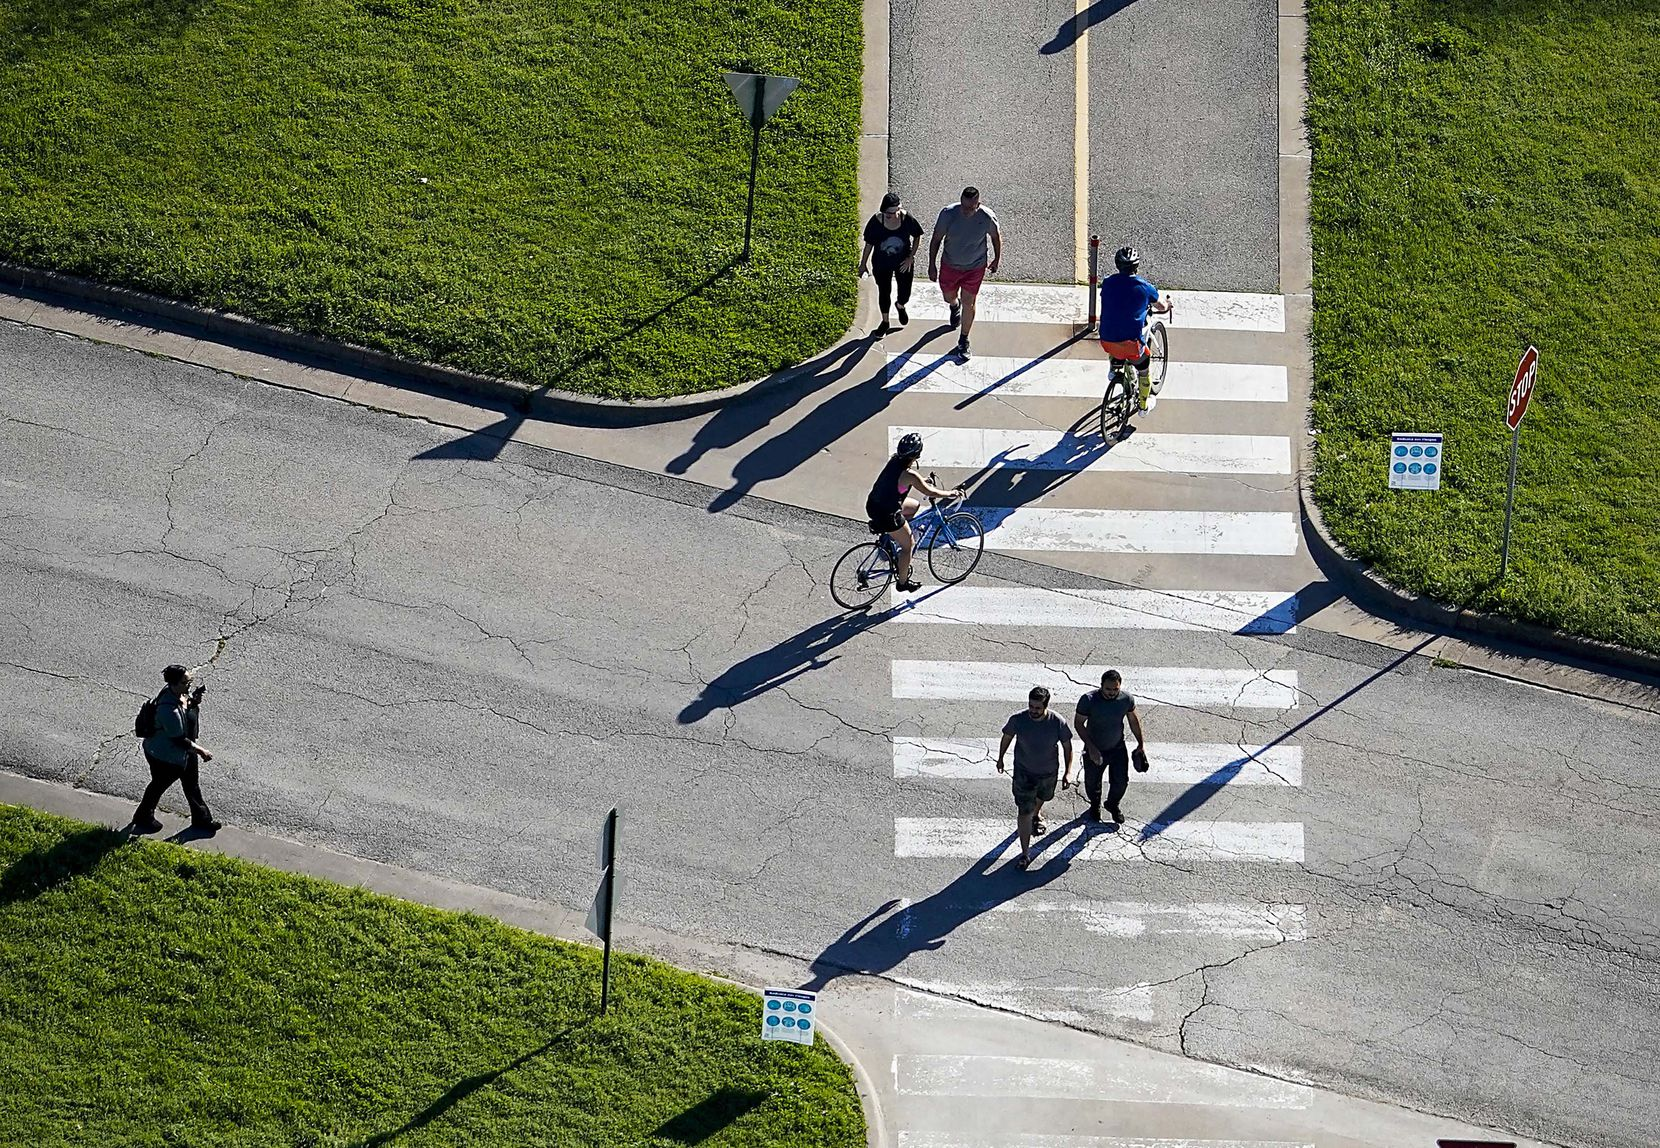 Aerial view of people cycling, walking and jogging on a trail at White Rock Lake in Dallas on Tuesday, March 24, 2020. With social distancing the norm now due to the new coronavirus, 'for the first time ever, we have to ask people not to come to the trail for their safety,' said Paula Grunow, development and operations assistant for the nonprofit Friends of the Katy Trail.